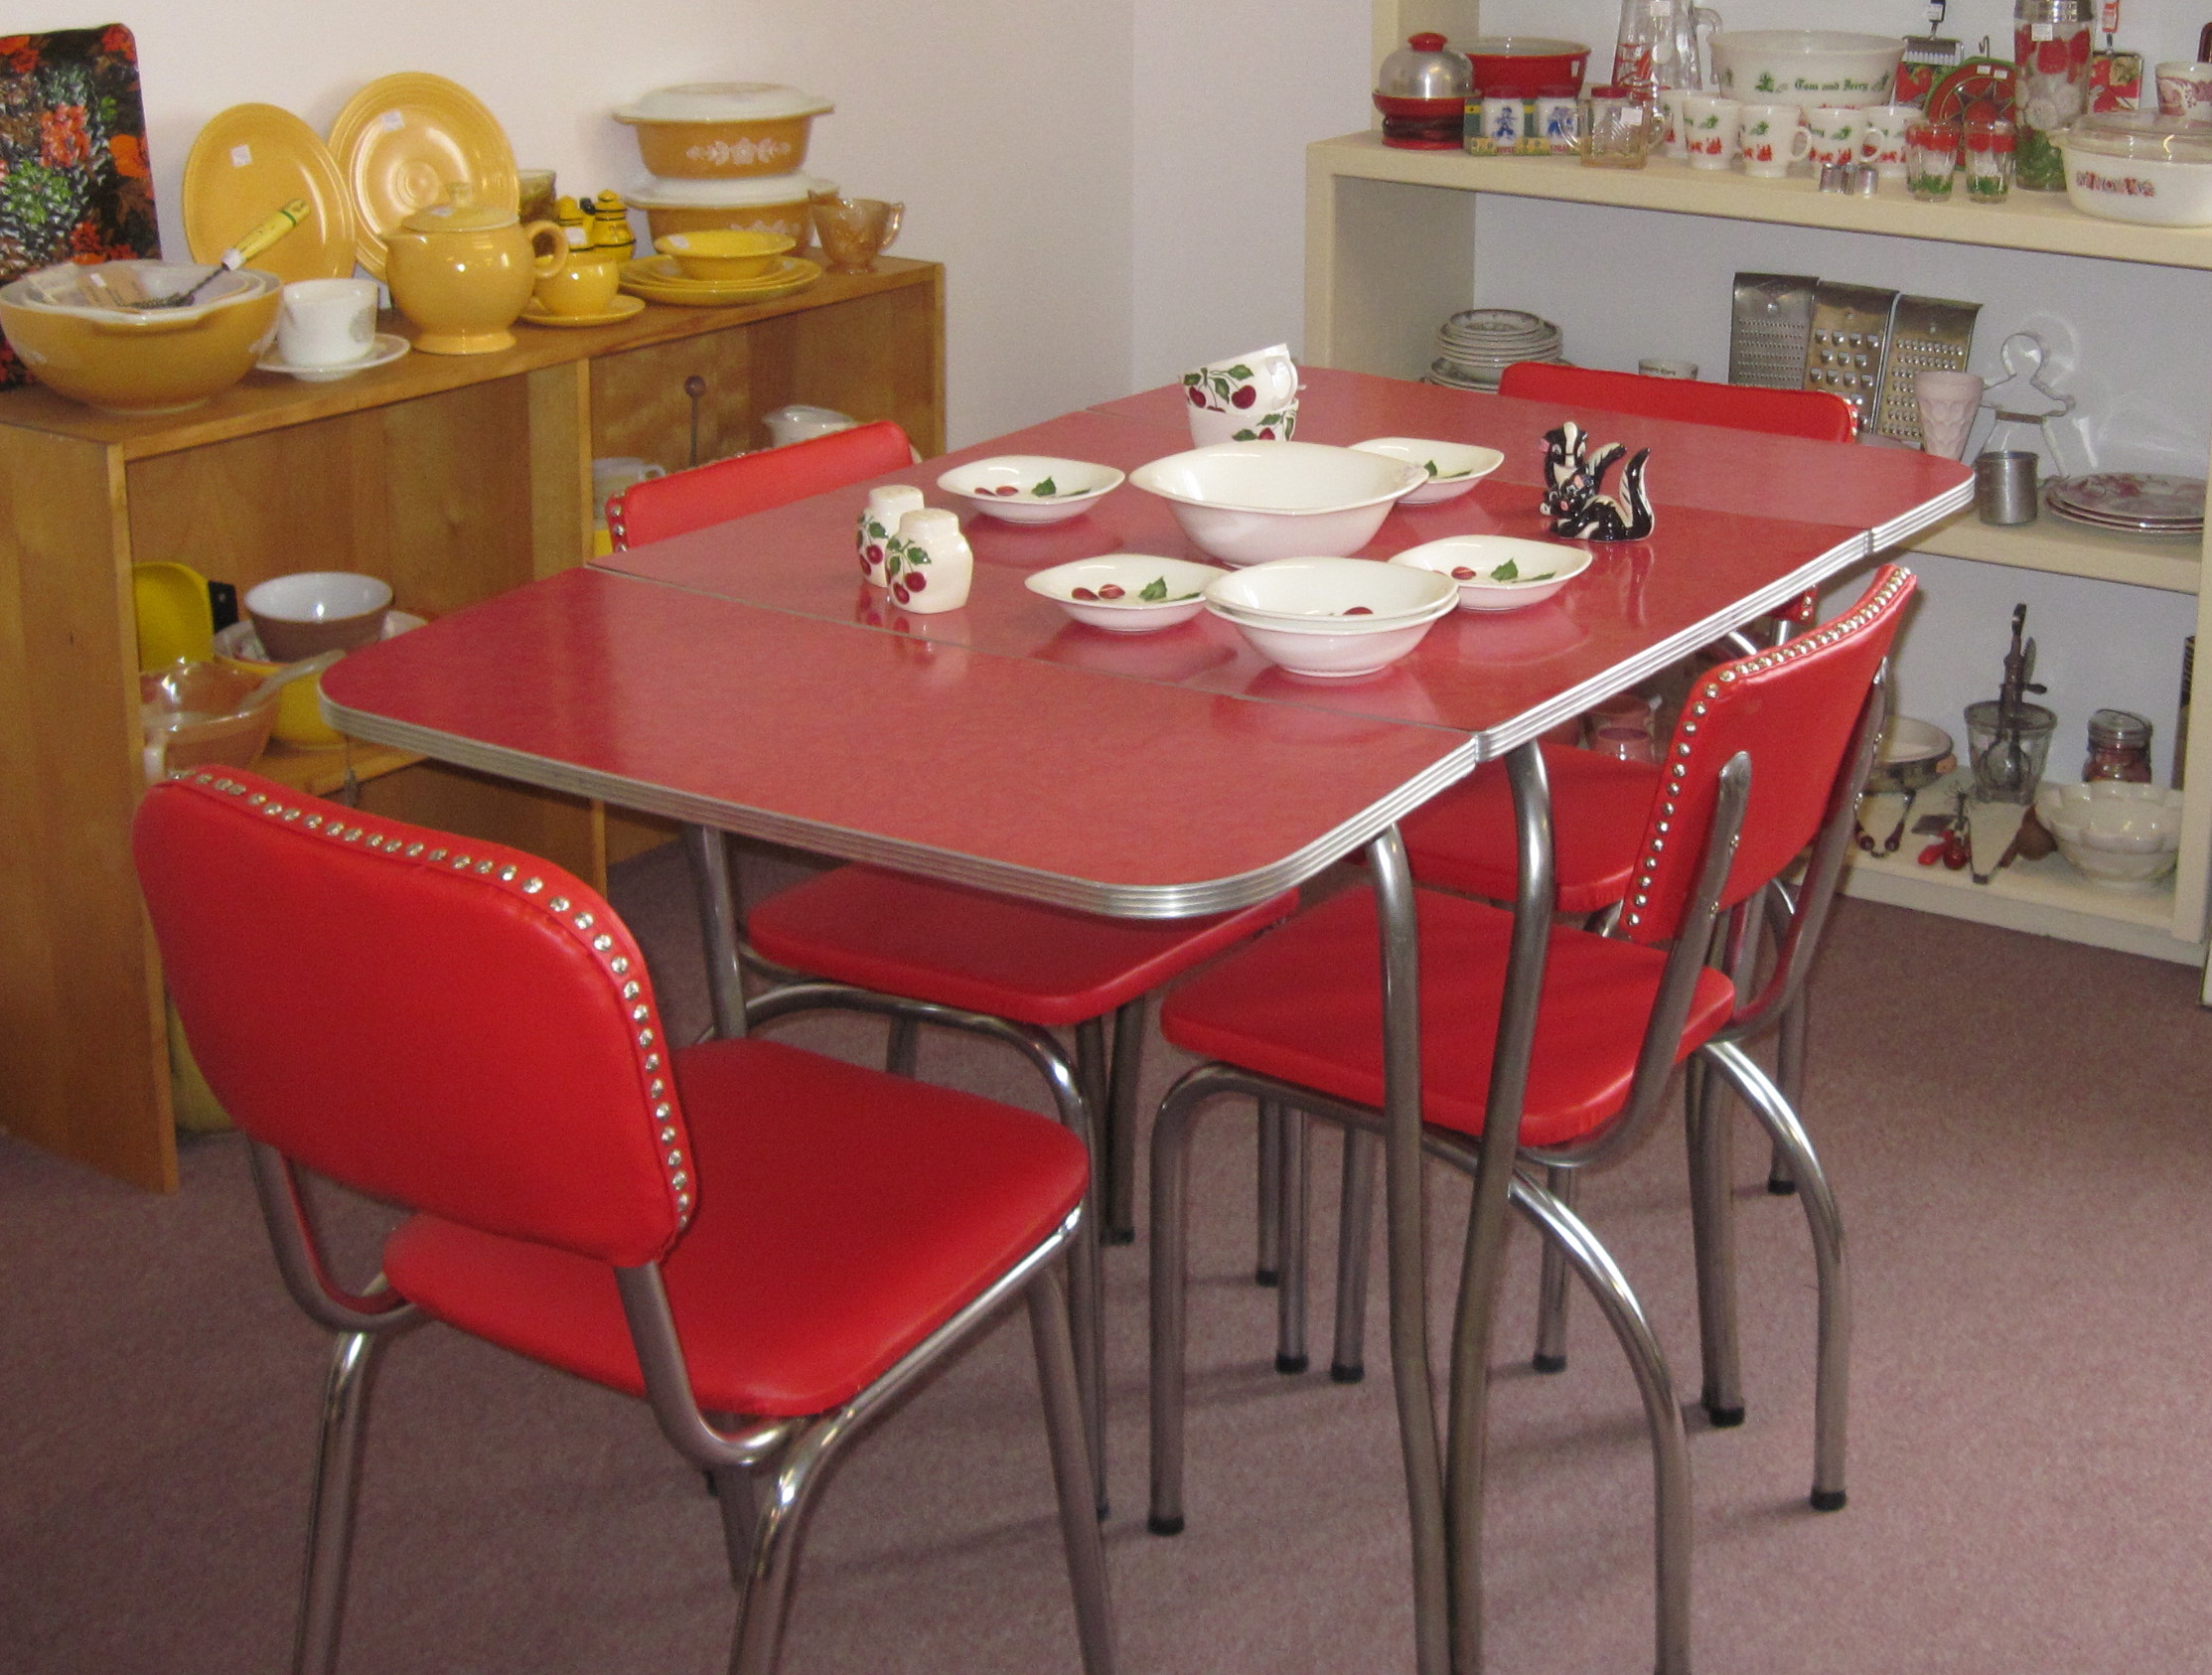 Formica Table And Chairs Formica Table Fabfindsblog